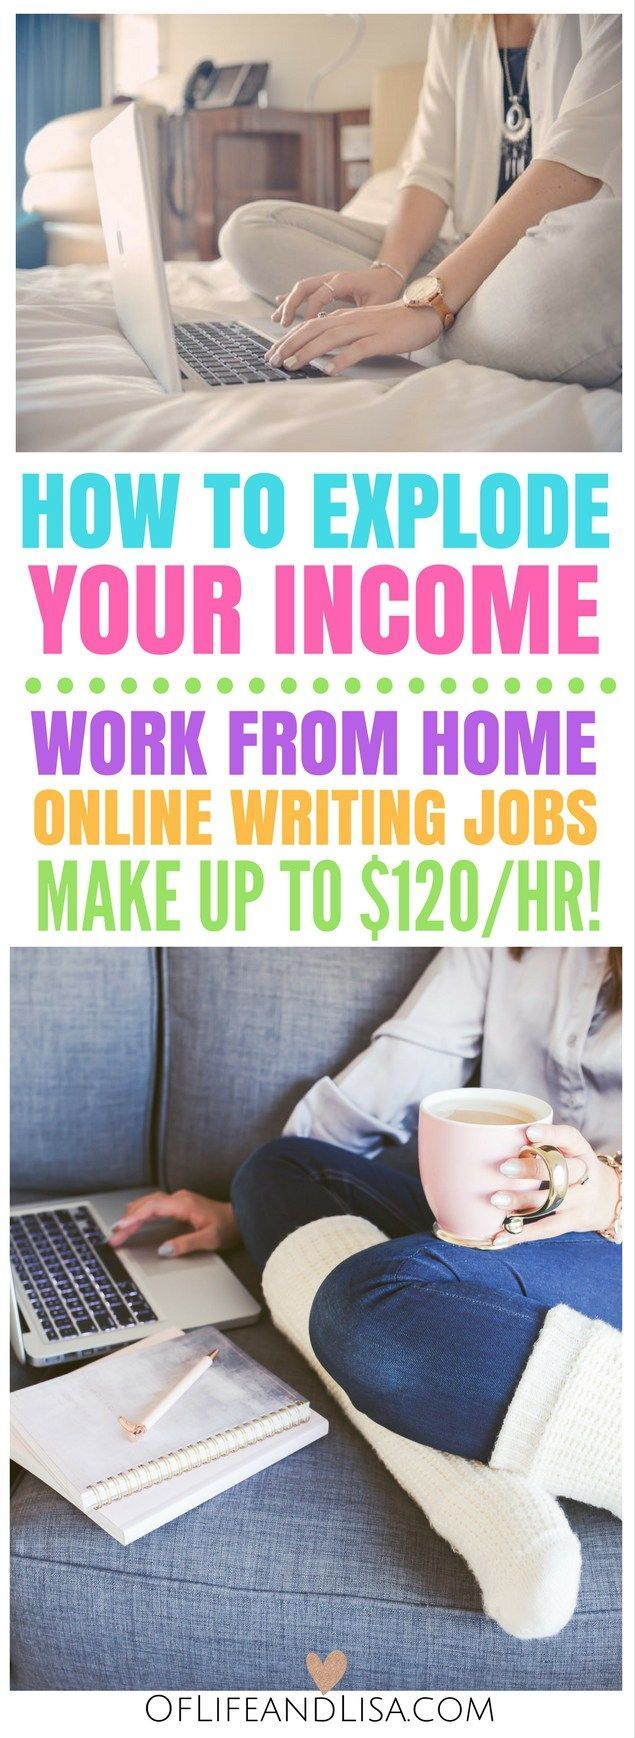 best online writing jobs ideas lance online work from home online writing jobs you can t afford to miss